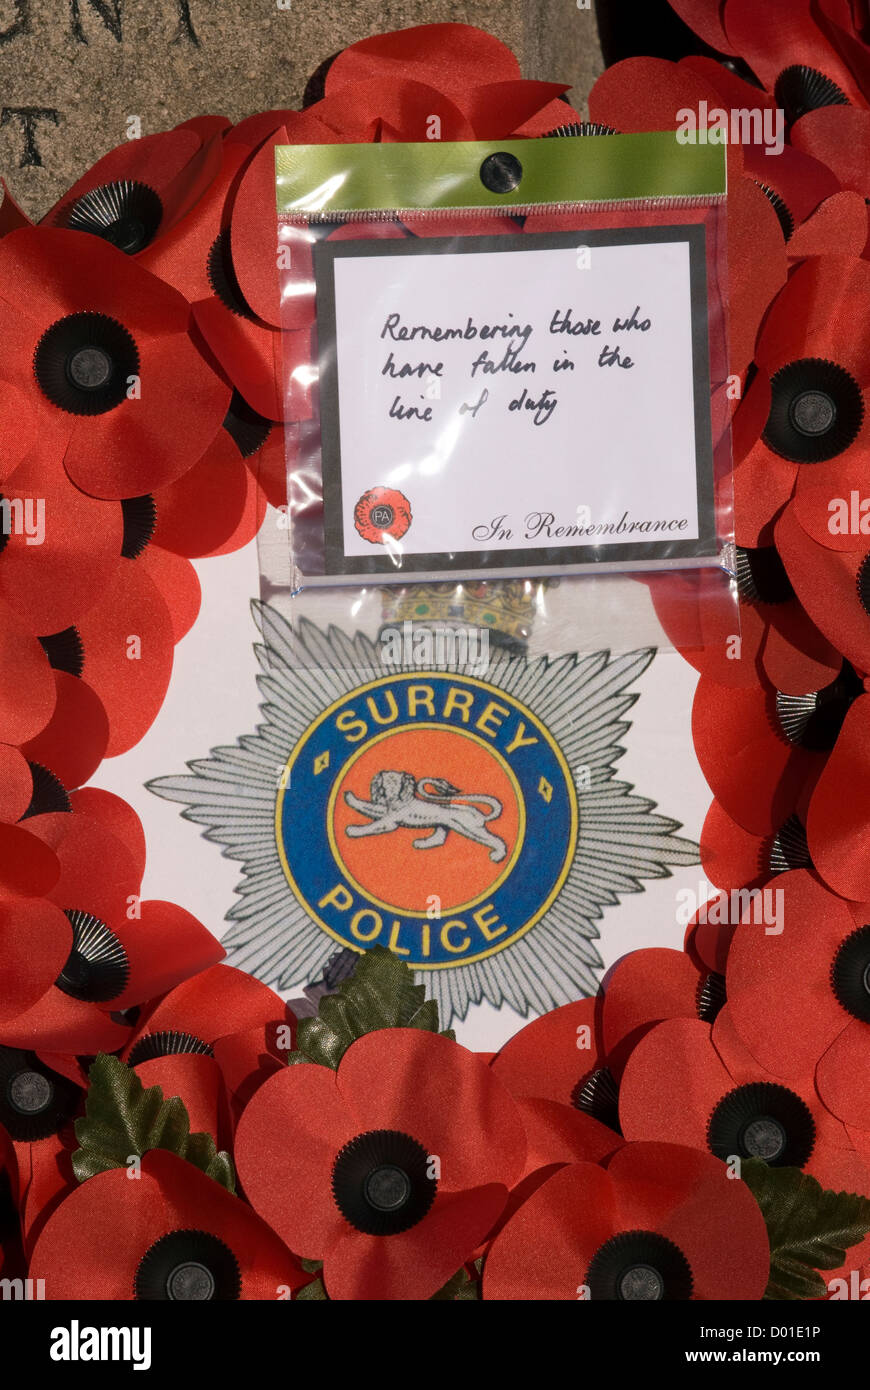 Wreath left by Surrey Police at local war memorial on Remembrance Sunday, High Street, Haslemere, Surrey, UK. 11.11.2012. - Stock Image